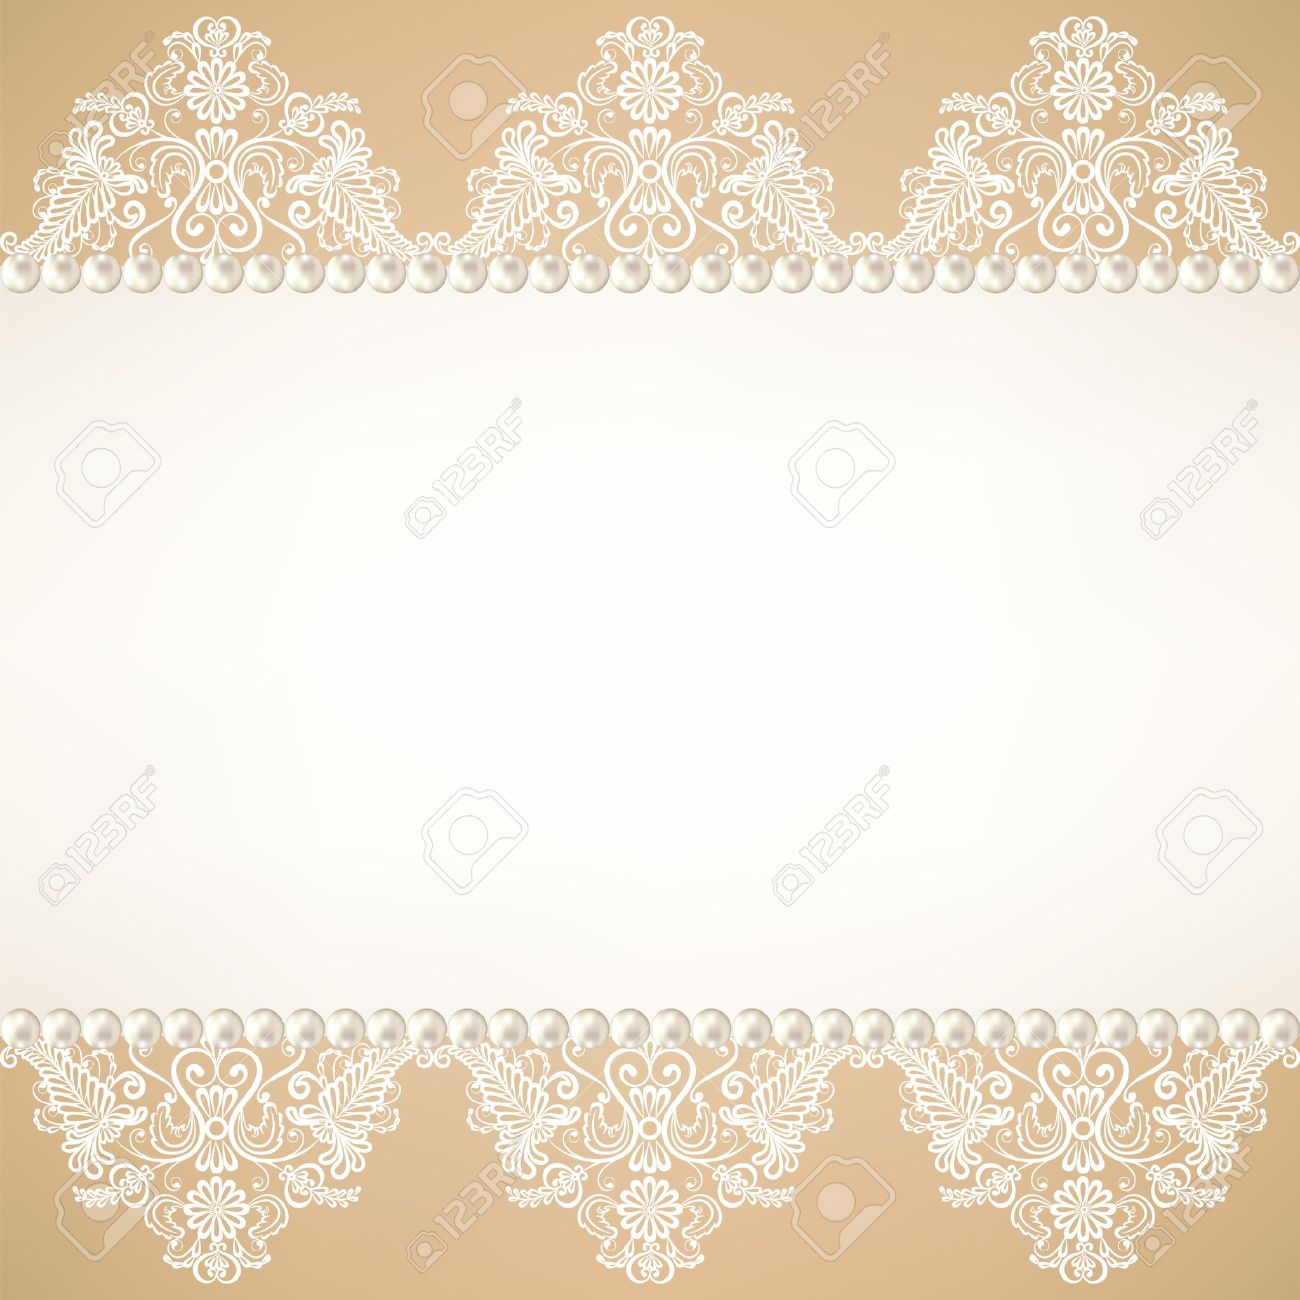 card background templates - Yelom.myphonecompany.co